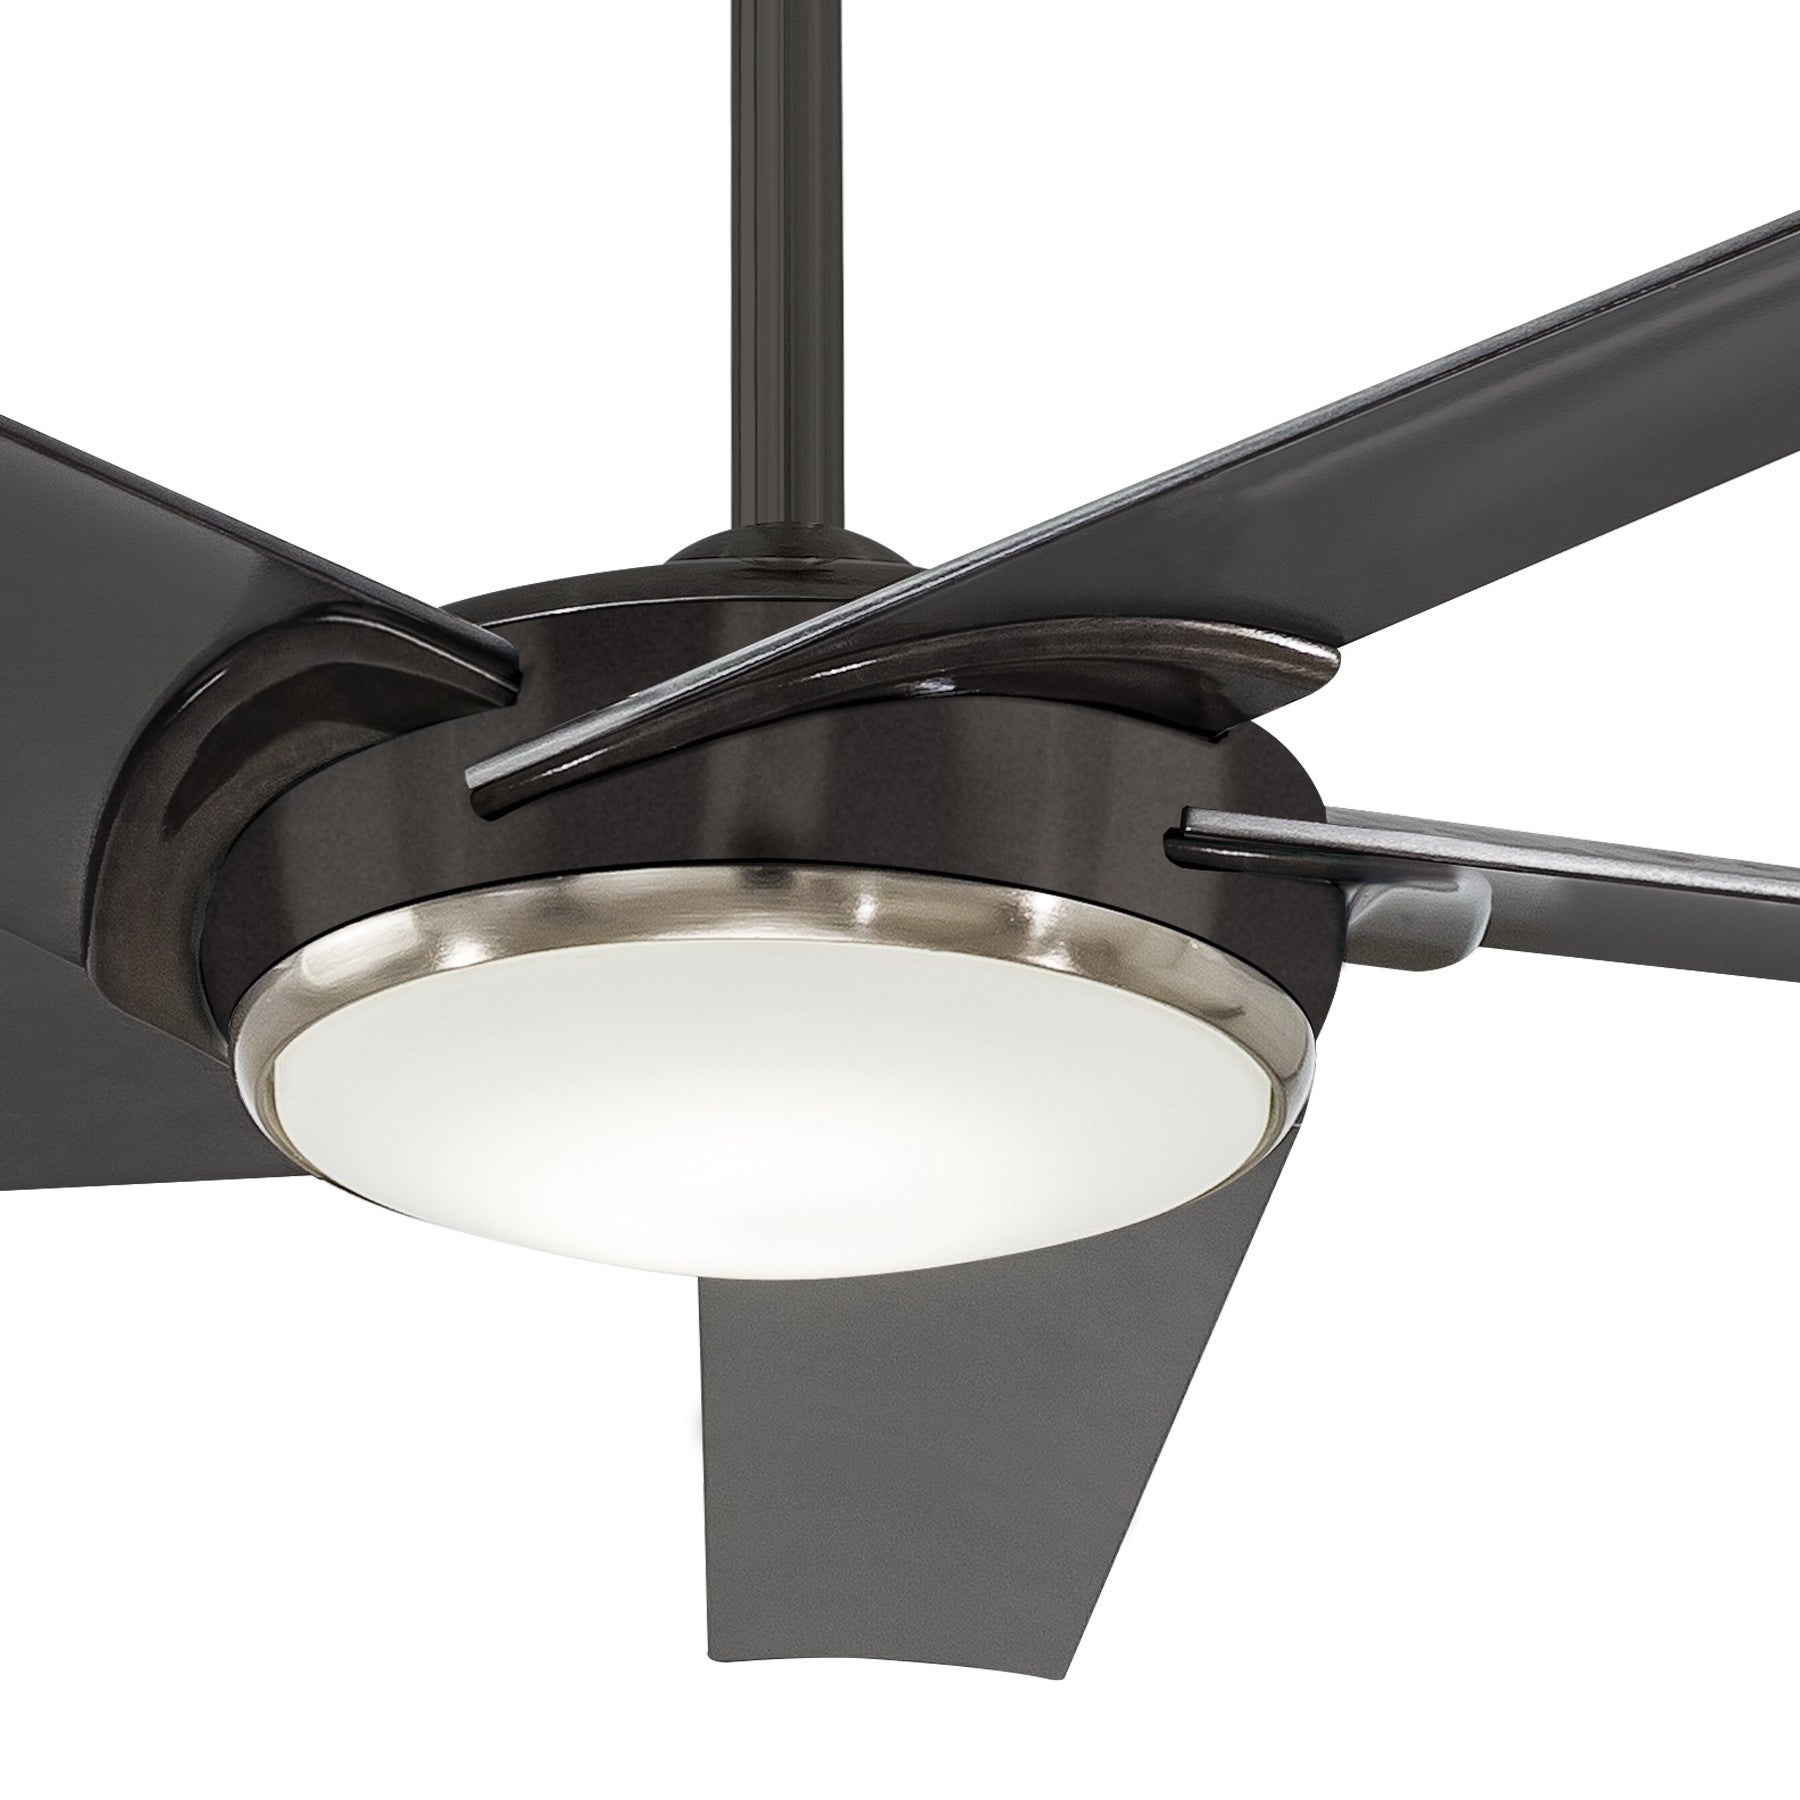 Raptor 60 Inch Ceiling Fan With Led In Gun Metal Finish W/gun Metal Blades With Recent Raptor 5 Blade Ceiling Fans (View 16 of 20)